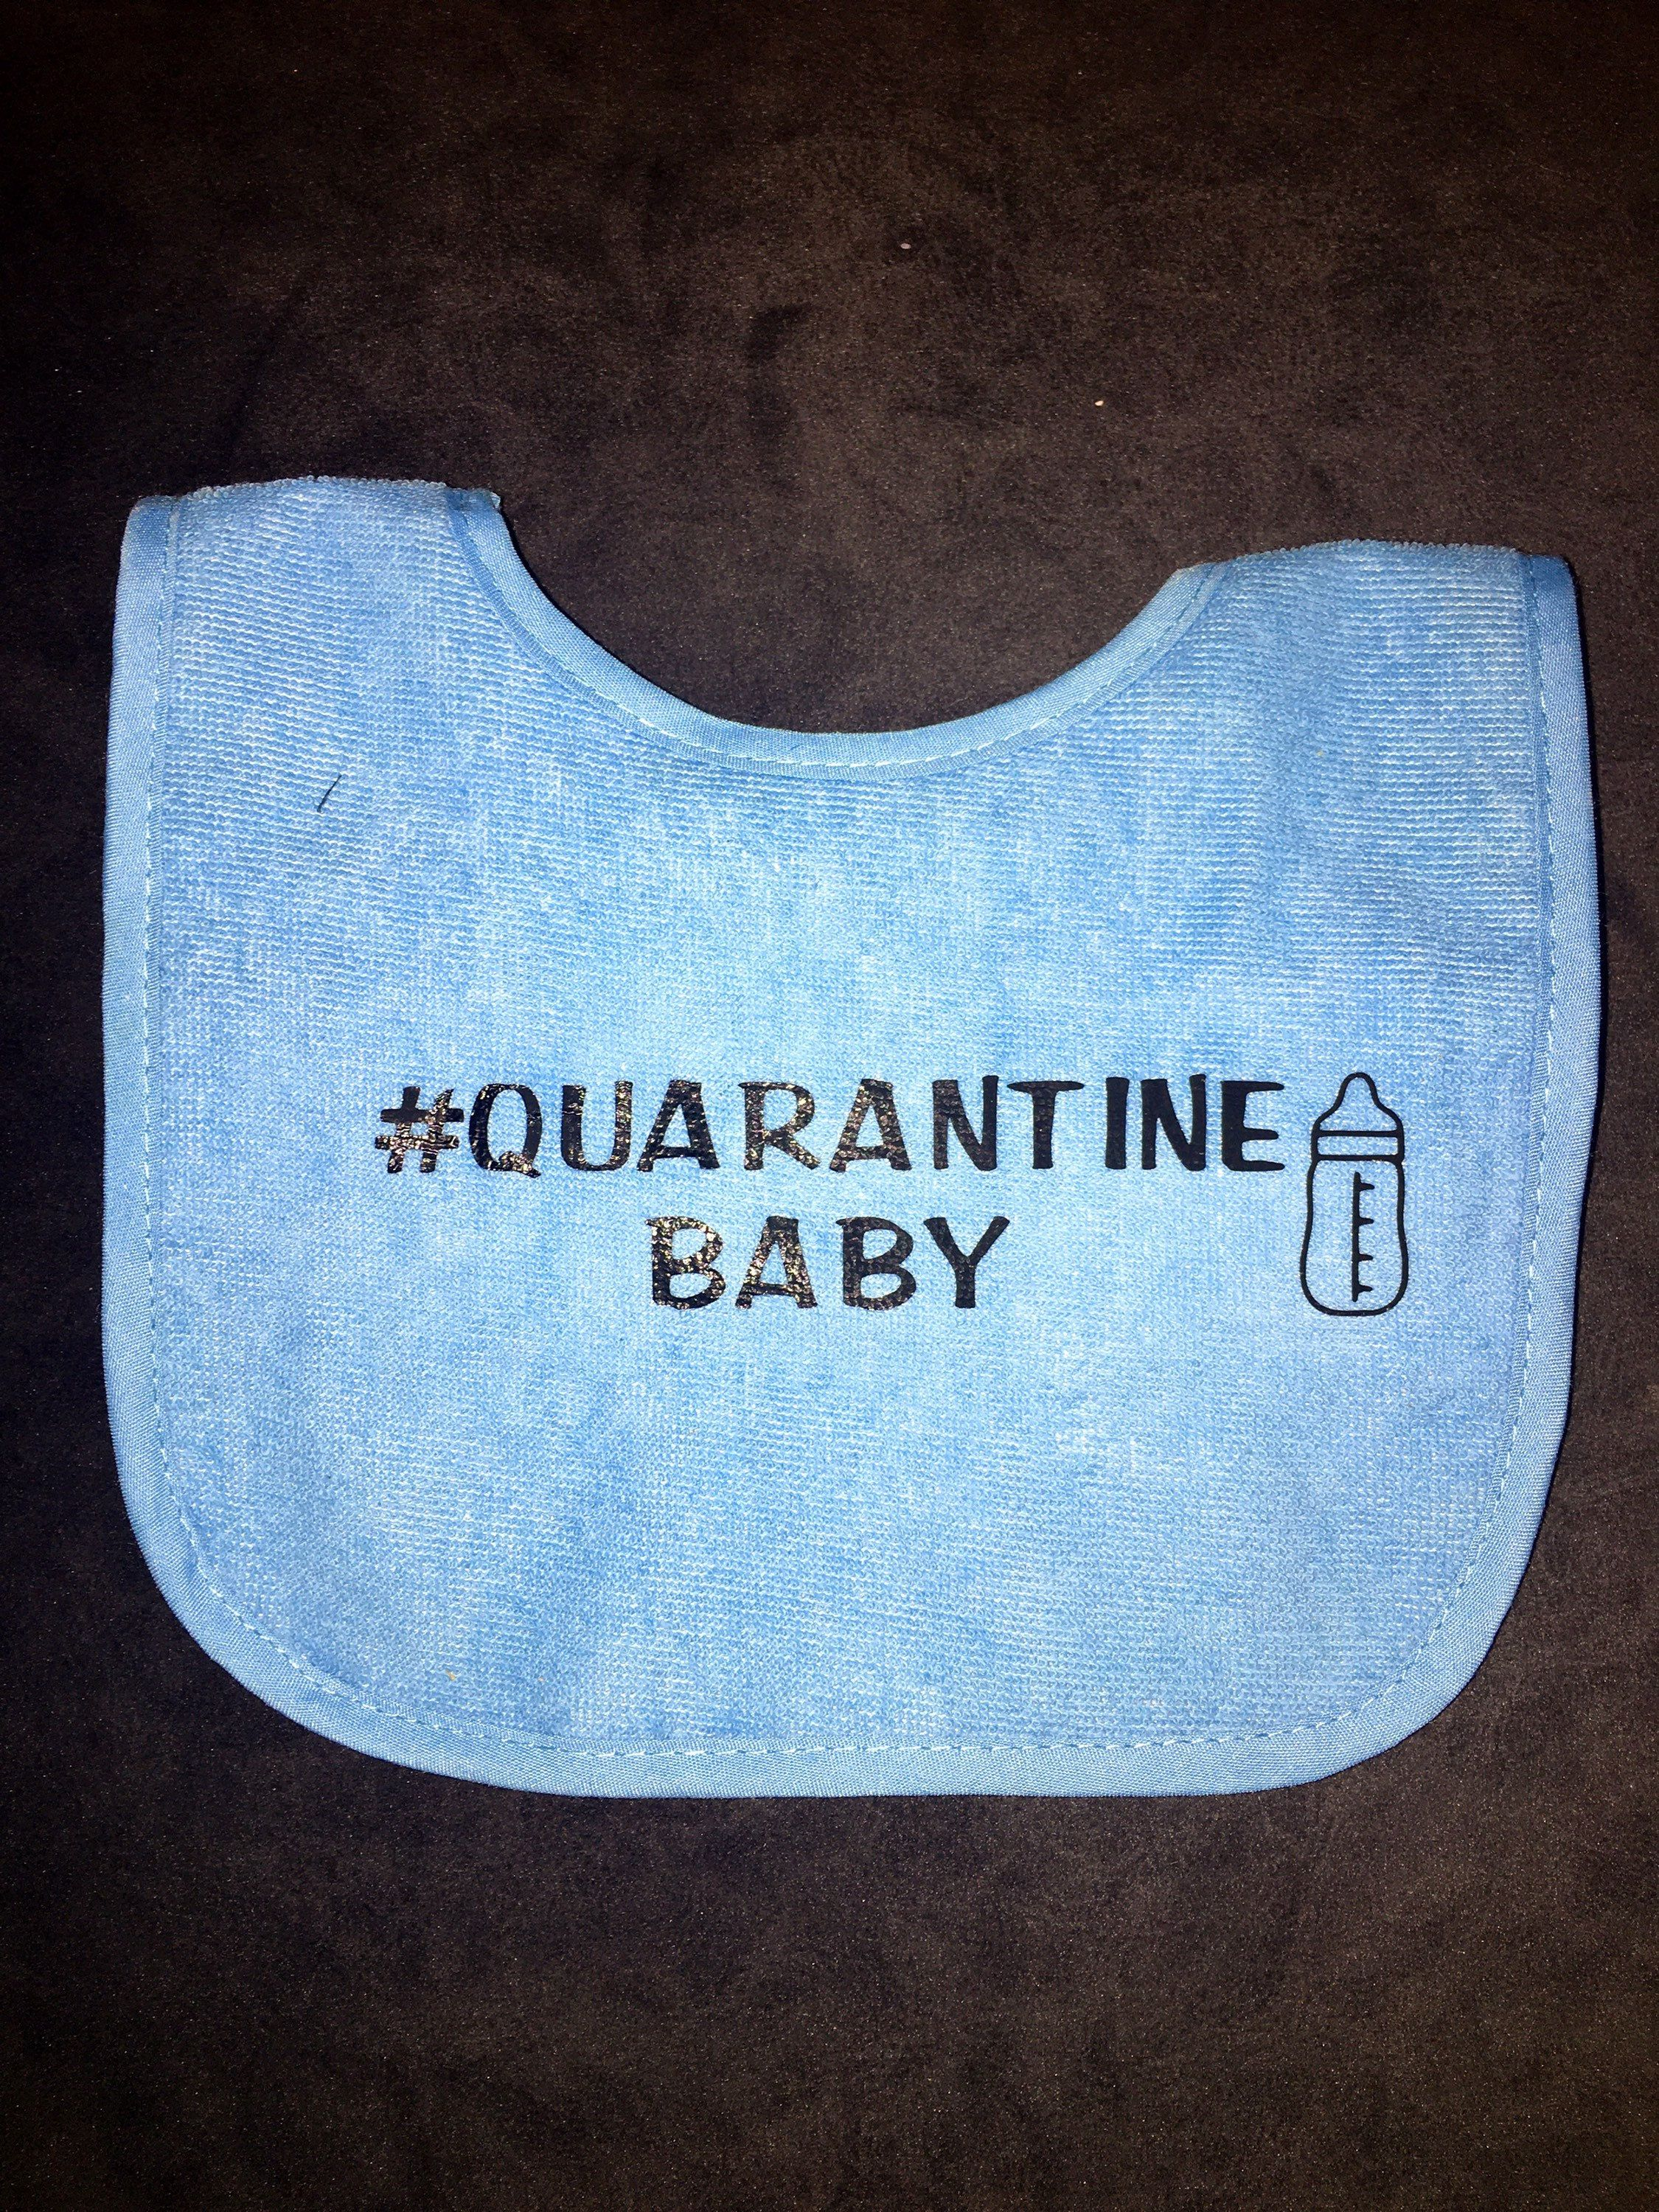 Quarantine baby bib - funny bib for boy or girl -